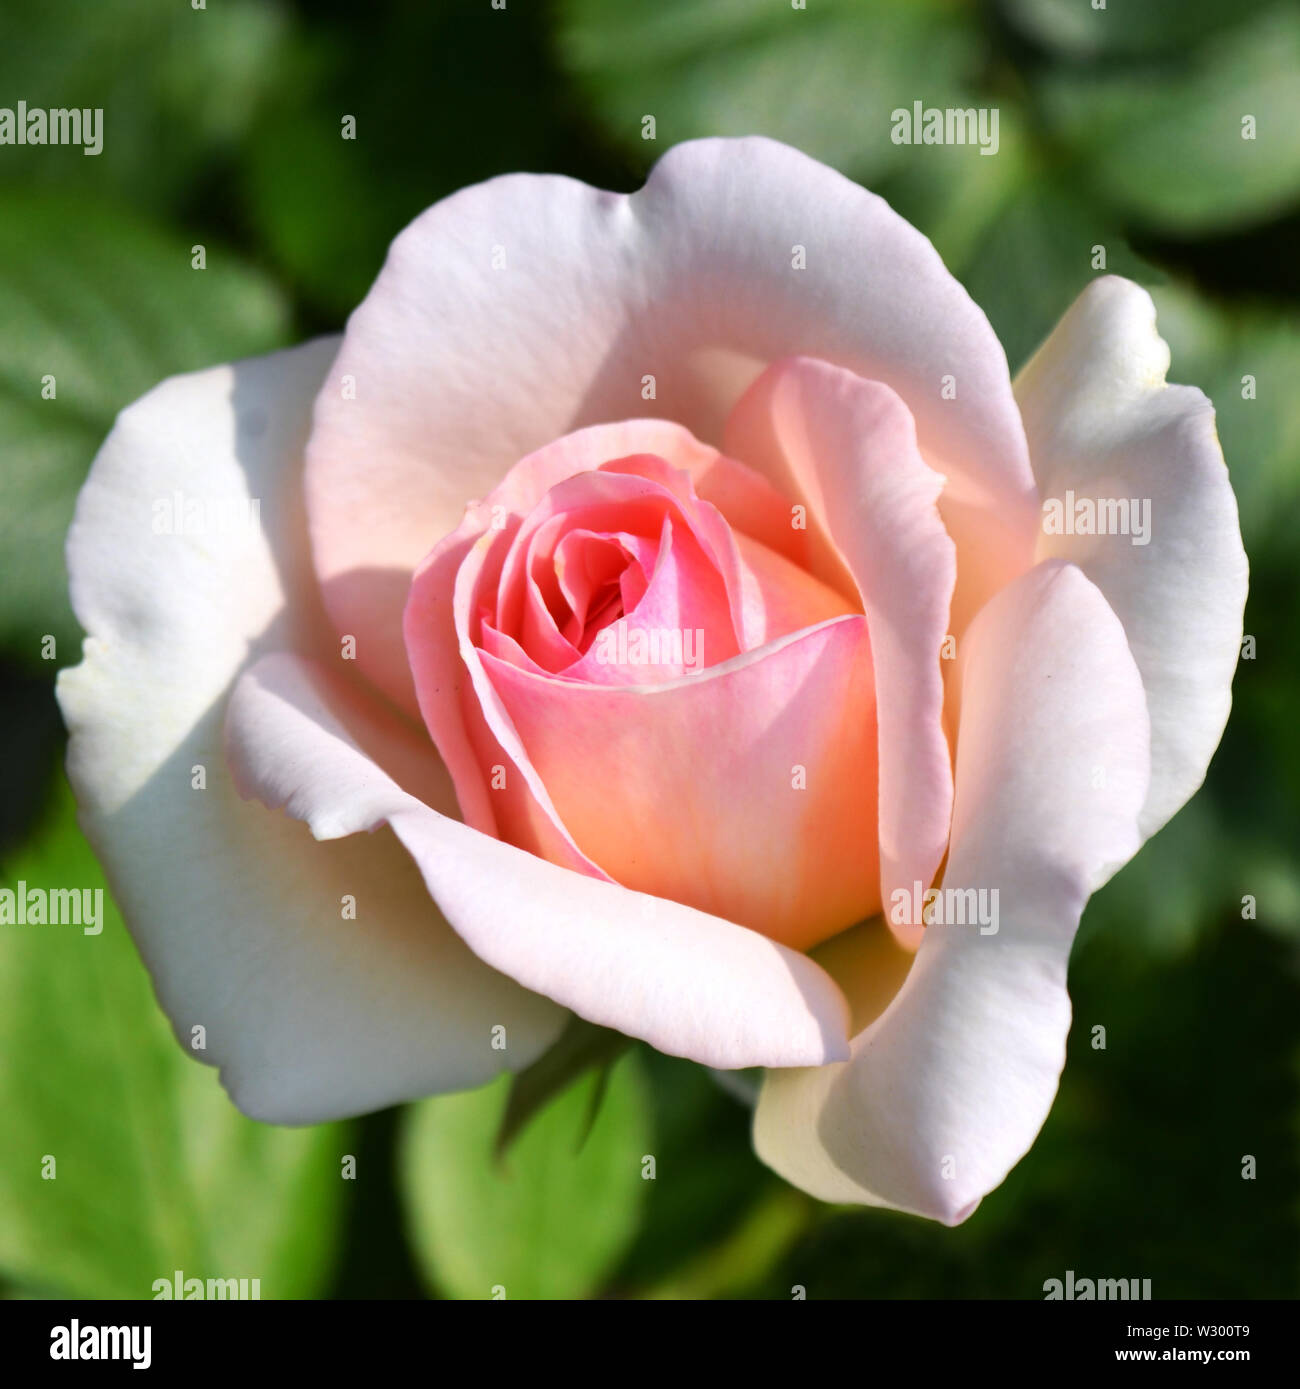 Close-up view to beautiful pink rose flower blooming brightly illuminated under the sun on green background. Stock Photo